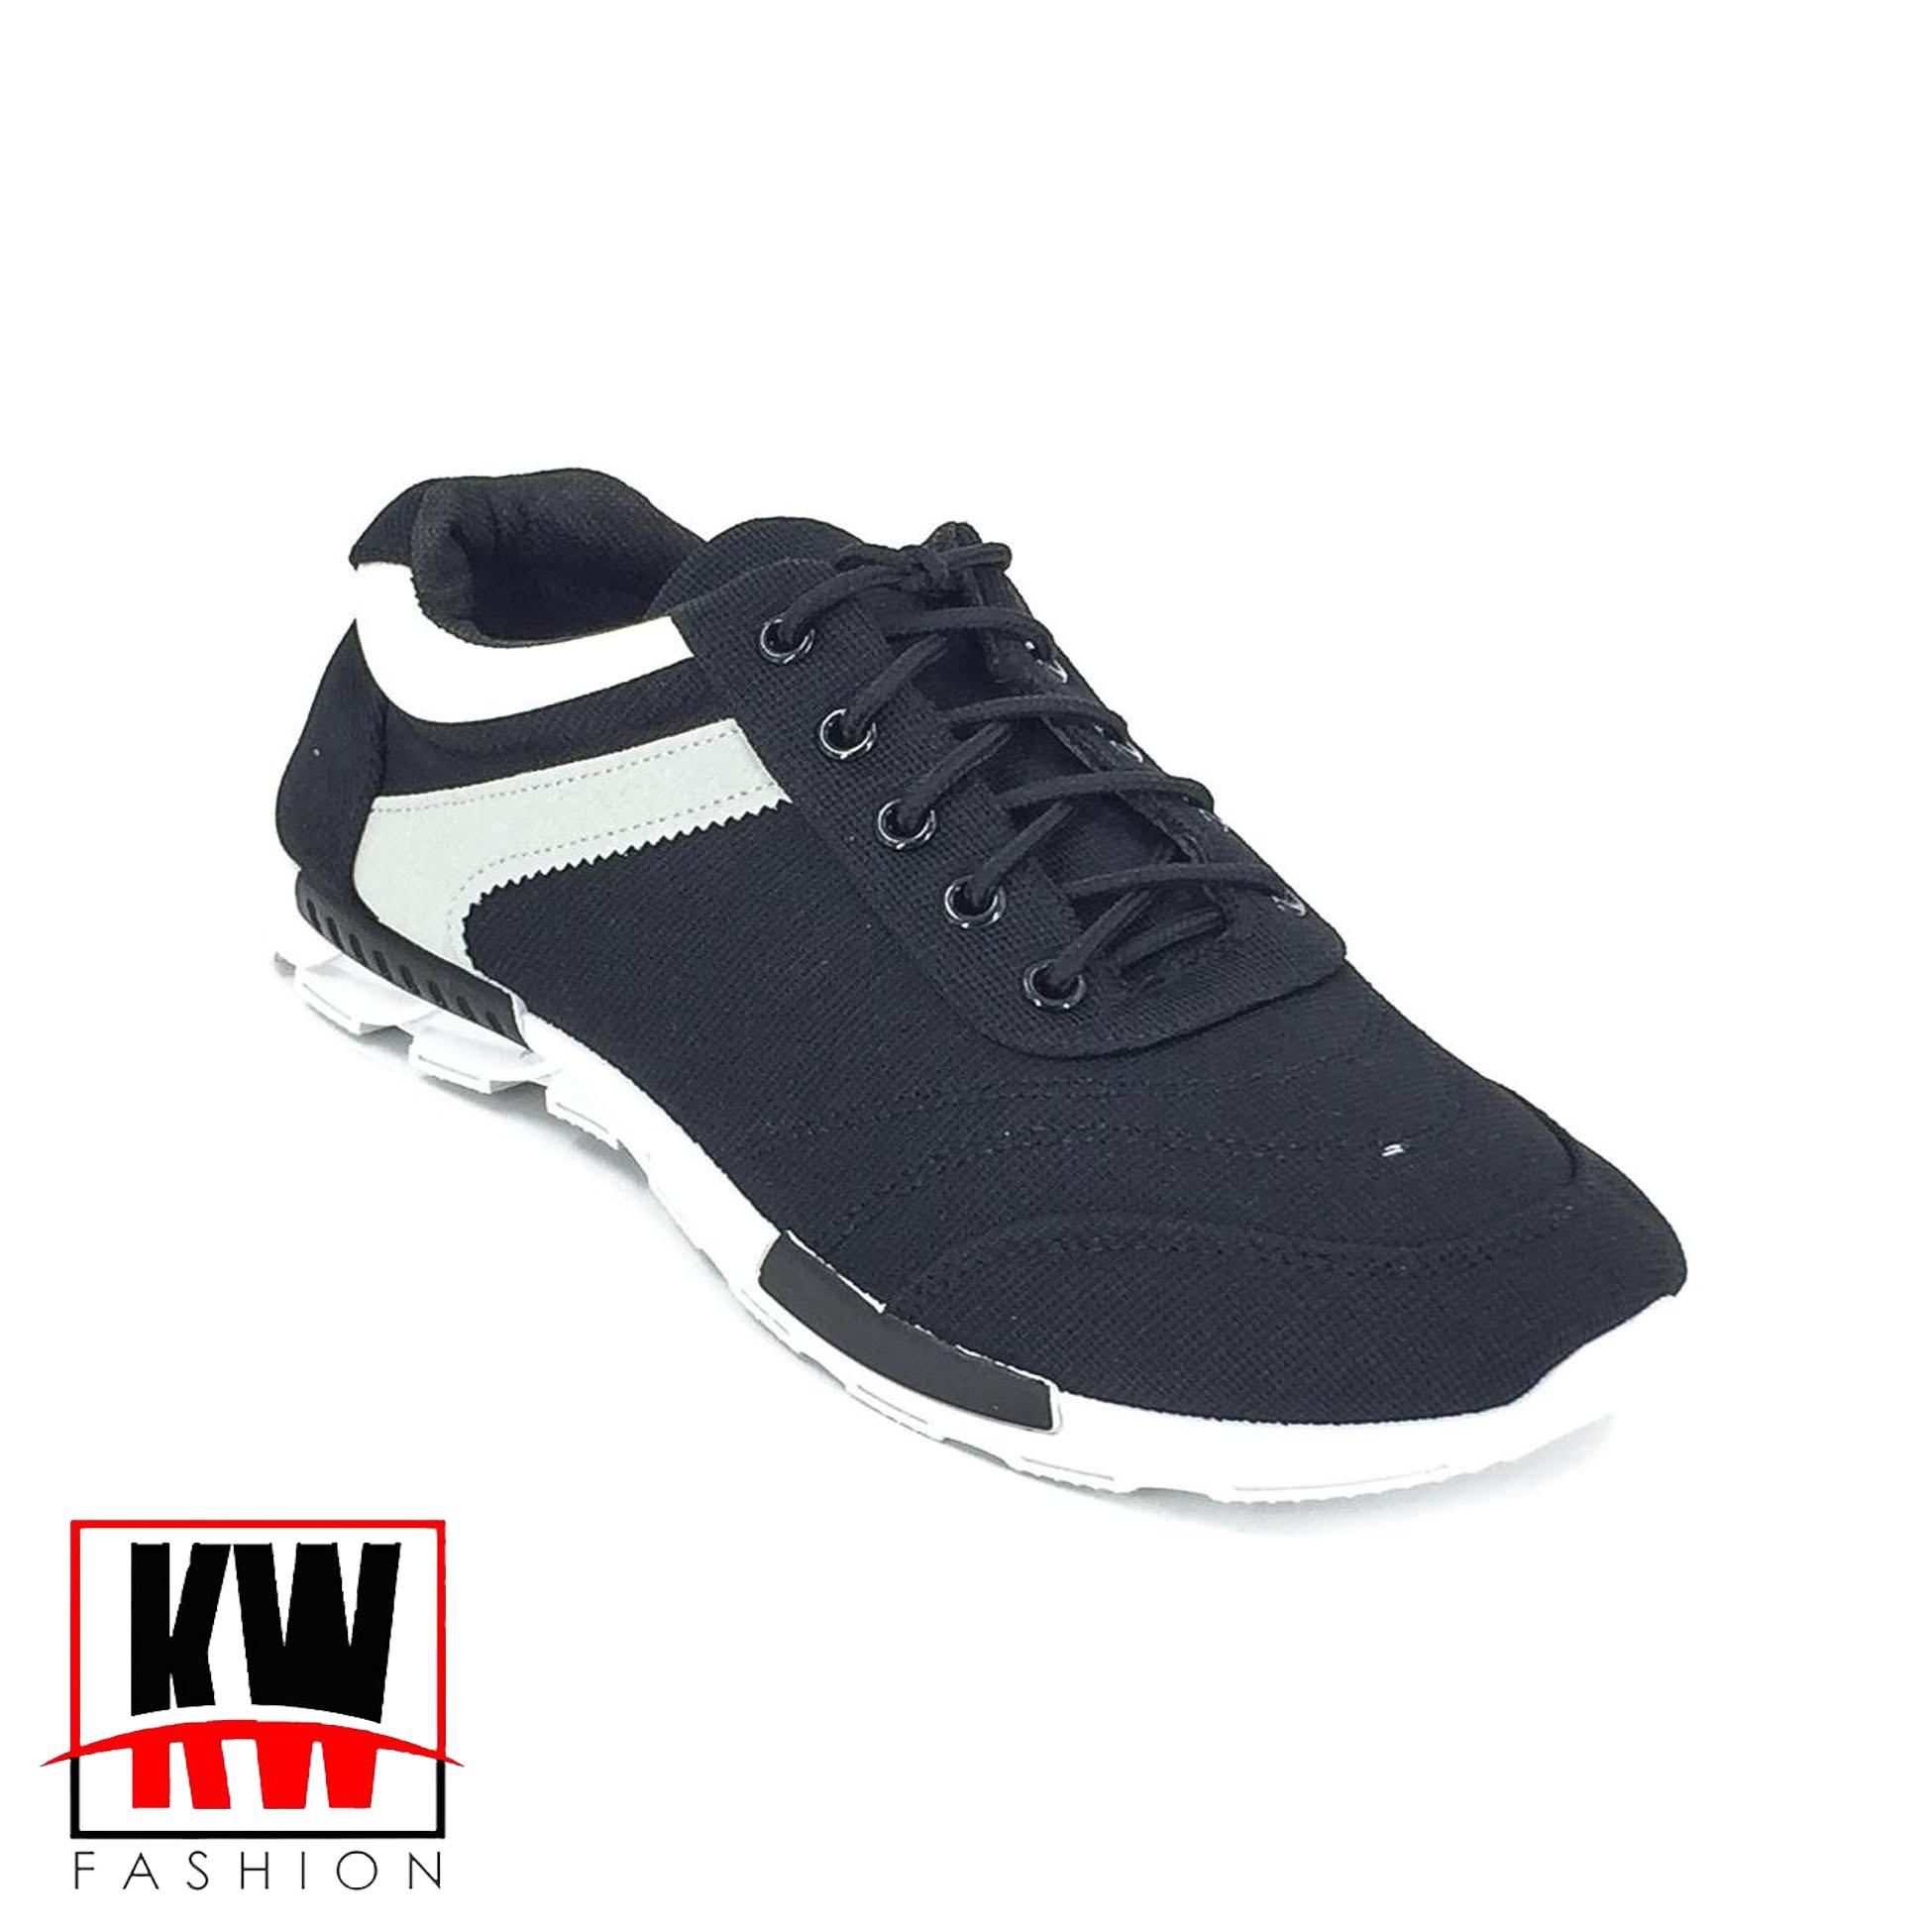 ef9675593c68 Shoes for Men for sale - Mens Fashion Shoes online brands